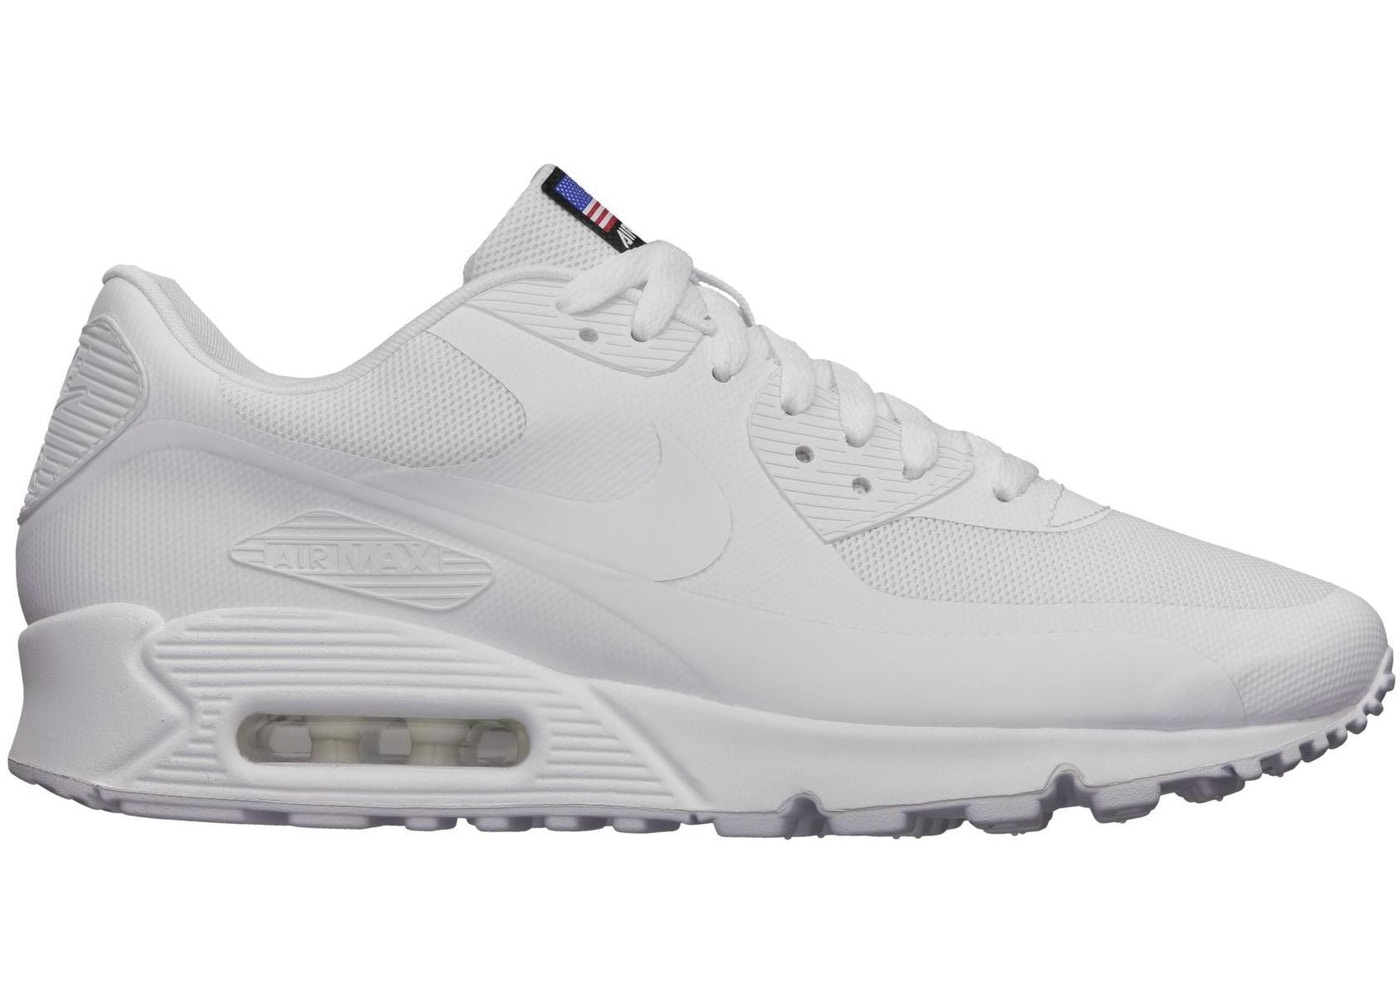 Tomba fessura larghezza  Nike Air Max 90 Hyperfuse Independence Day White - 613841-110